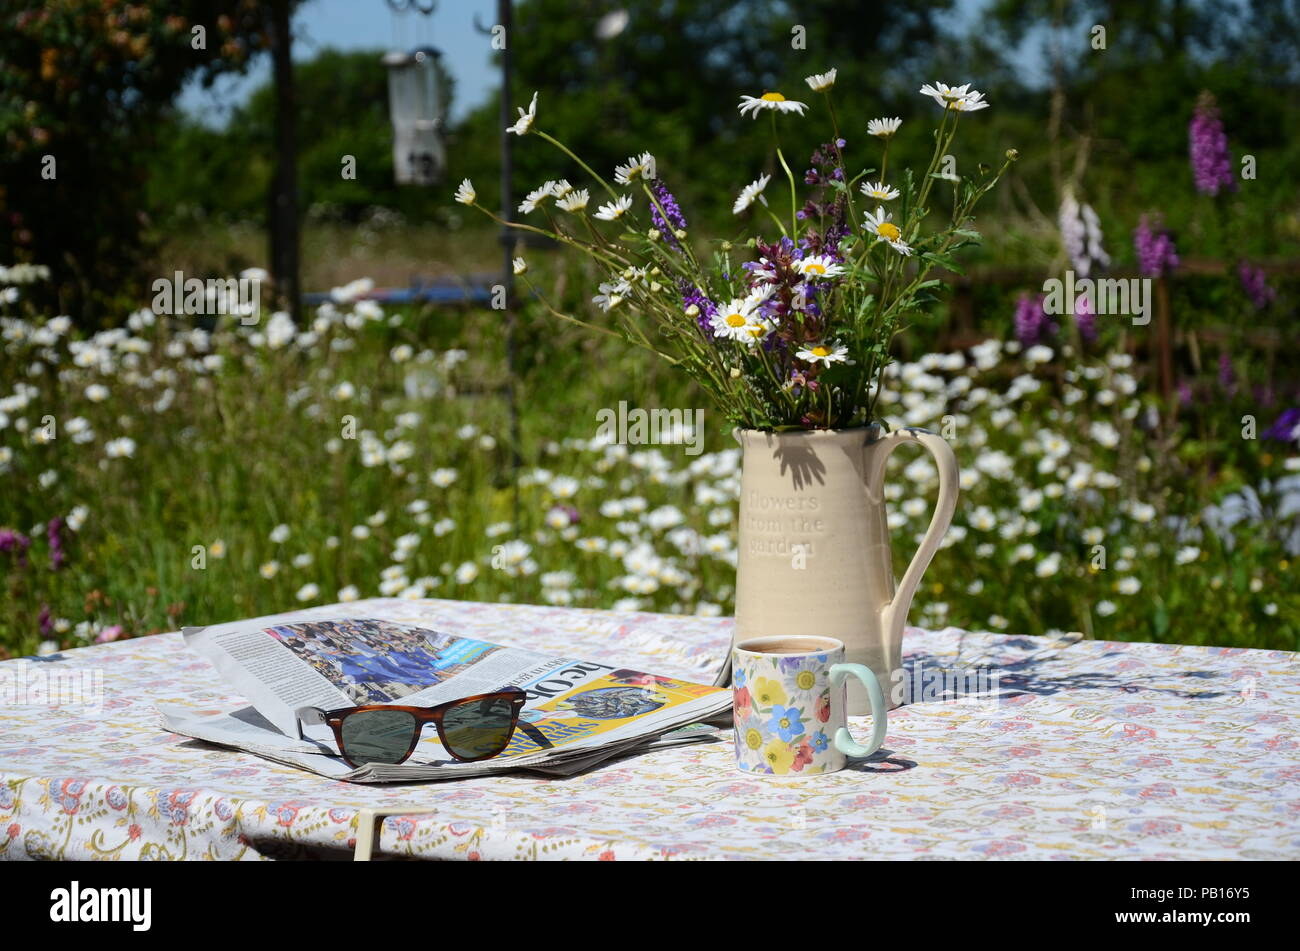 c1acc0889a66e Coffee or tea break in a sunny back garden table with the Sunday papers and  wildflowers